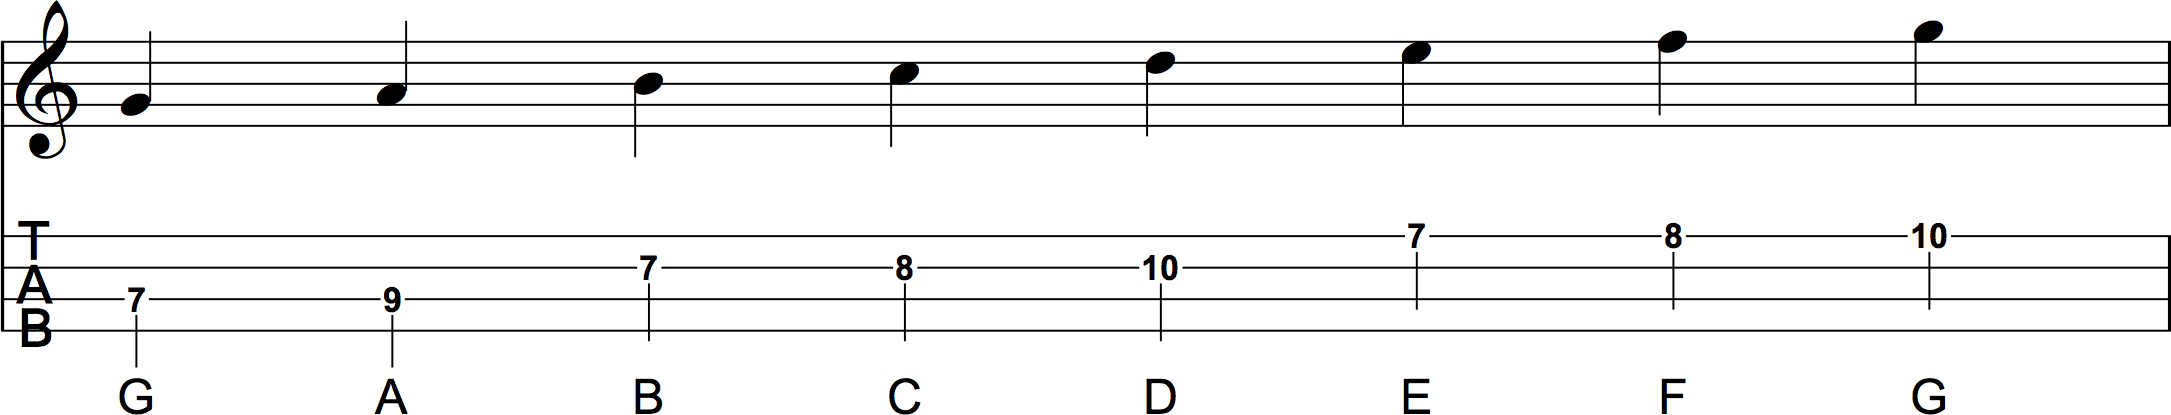 C Major Scale Position 4 Sheet Music and Ukulele Tab